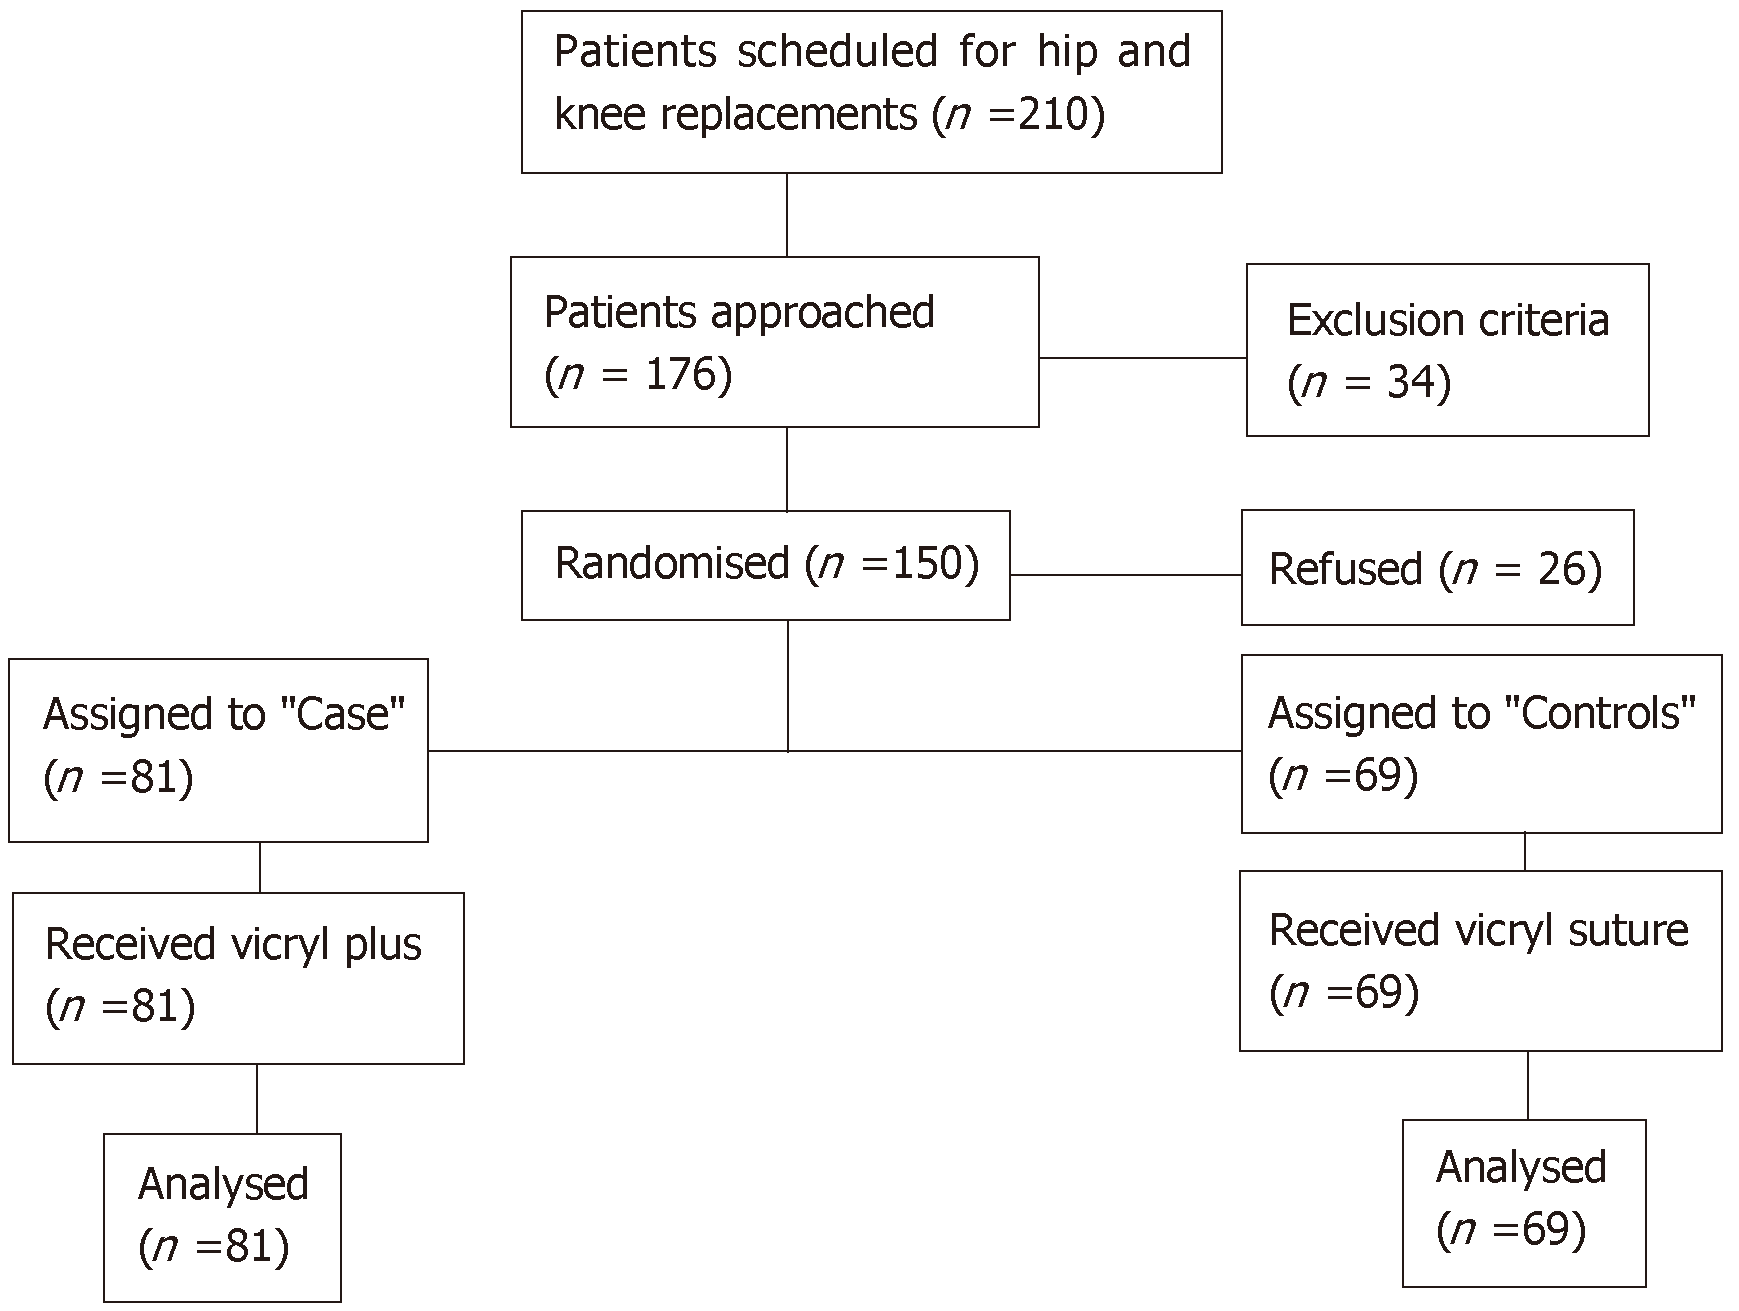 Randomised Controlled Trial Of Triclosan Coated Vs Uncoated Sutures In Primary Hip And Knee Arthroplasty